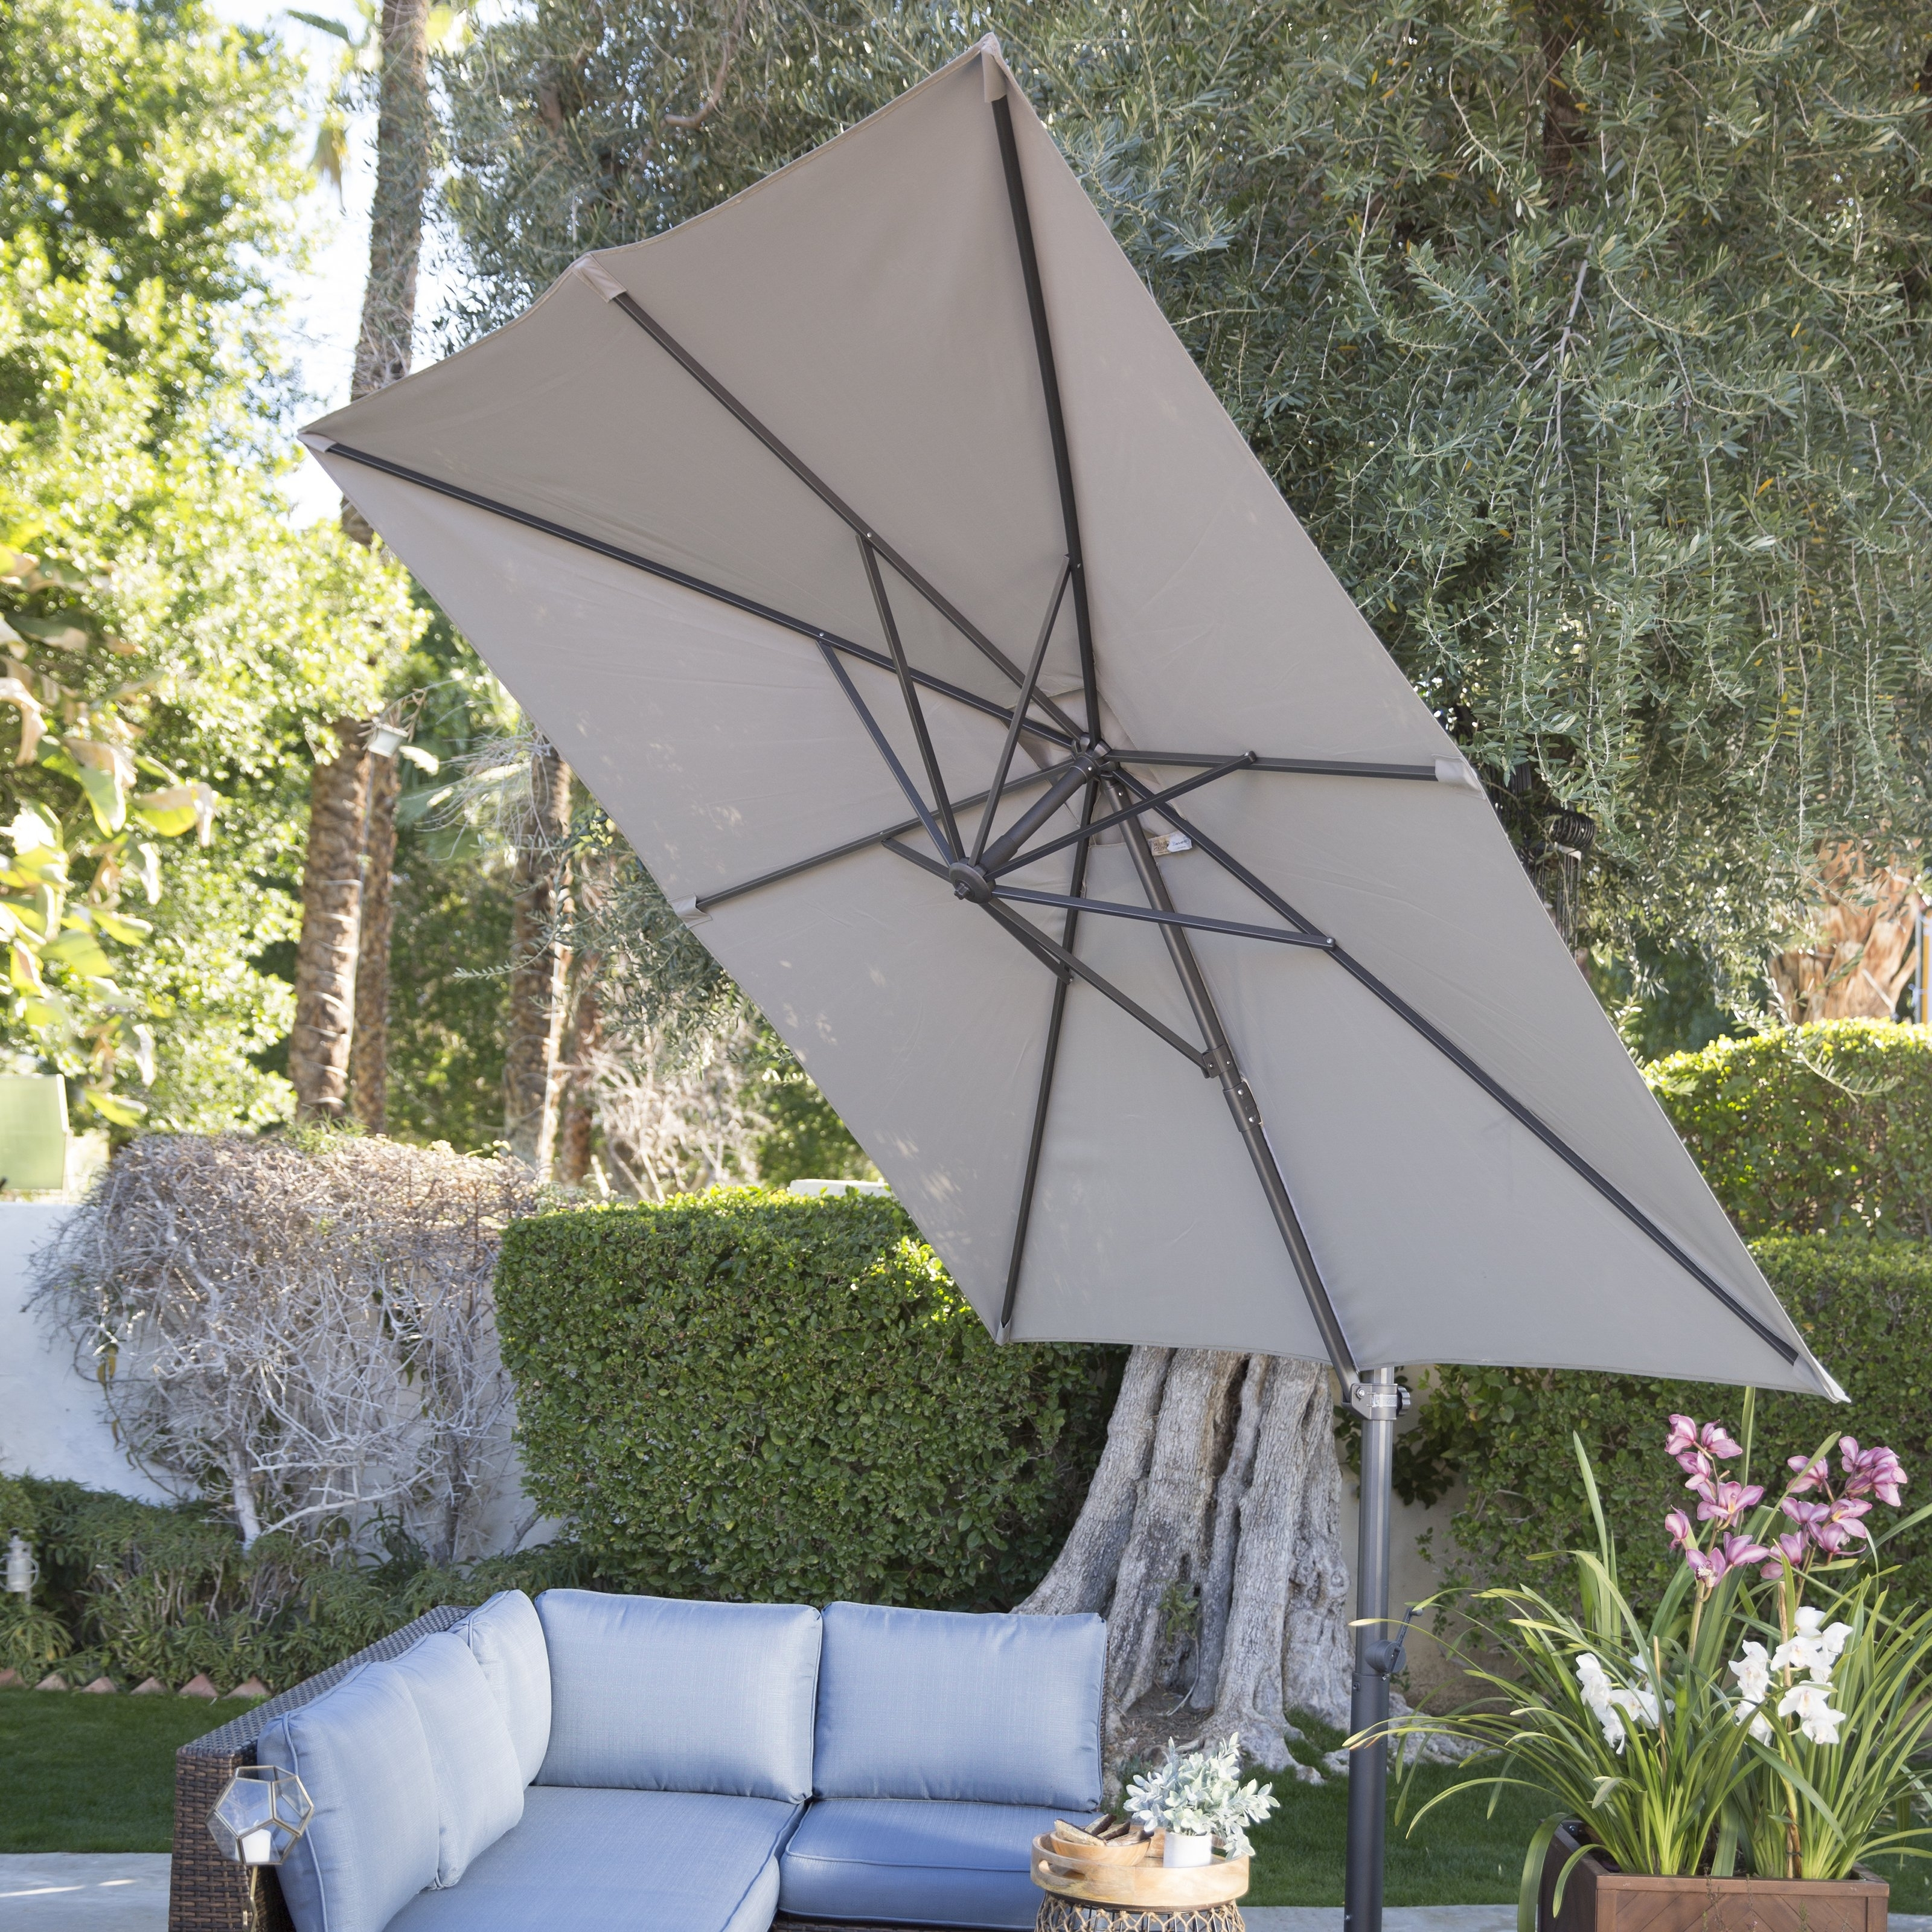 Hayneedle In Coral Coast Offset Patio Umbrellas (View 11 of 20)